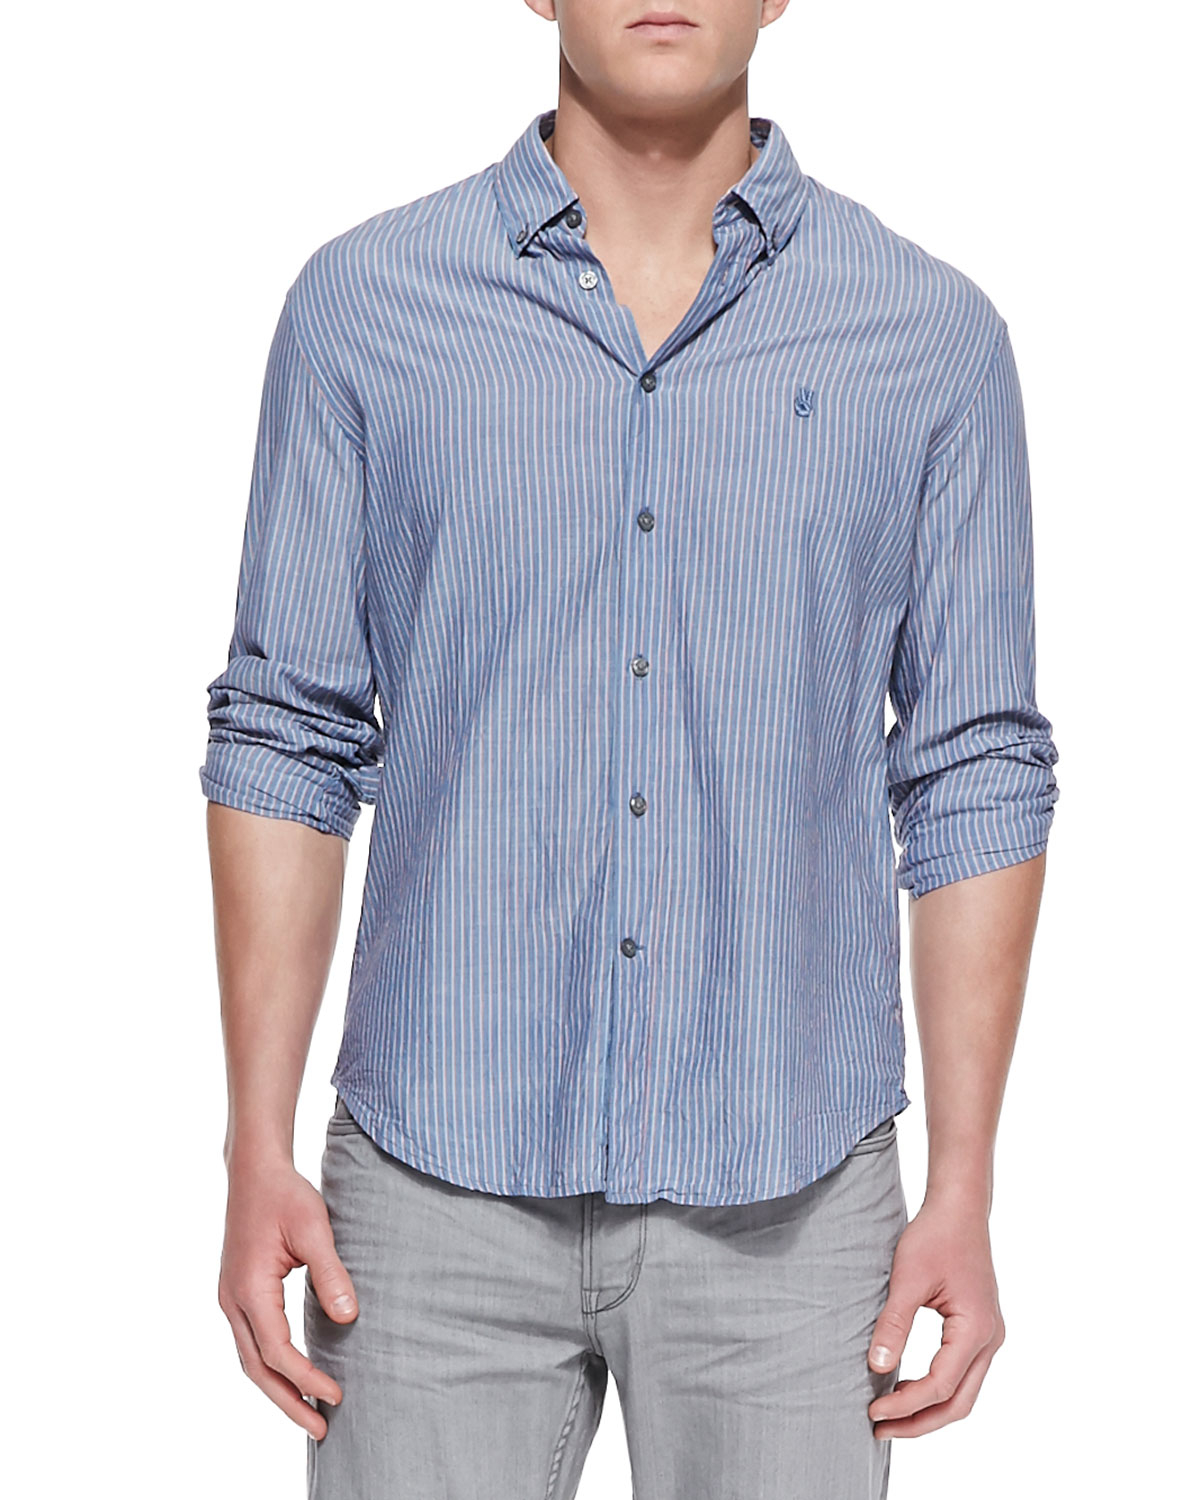 John Varvatos Striped Button Down Shirt In Blue For Men